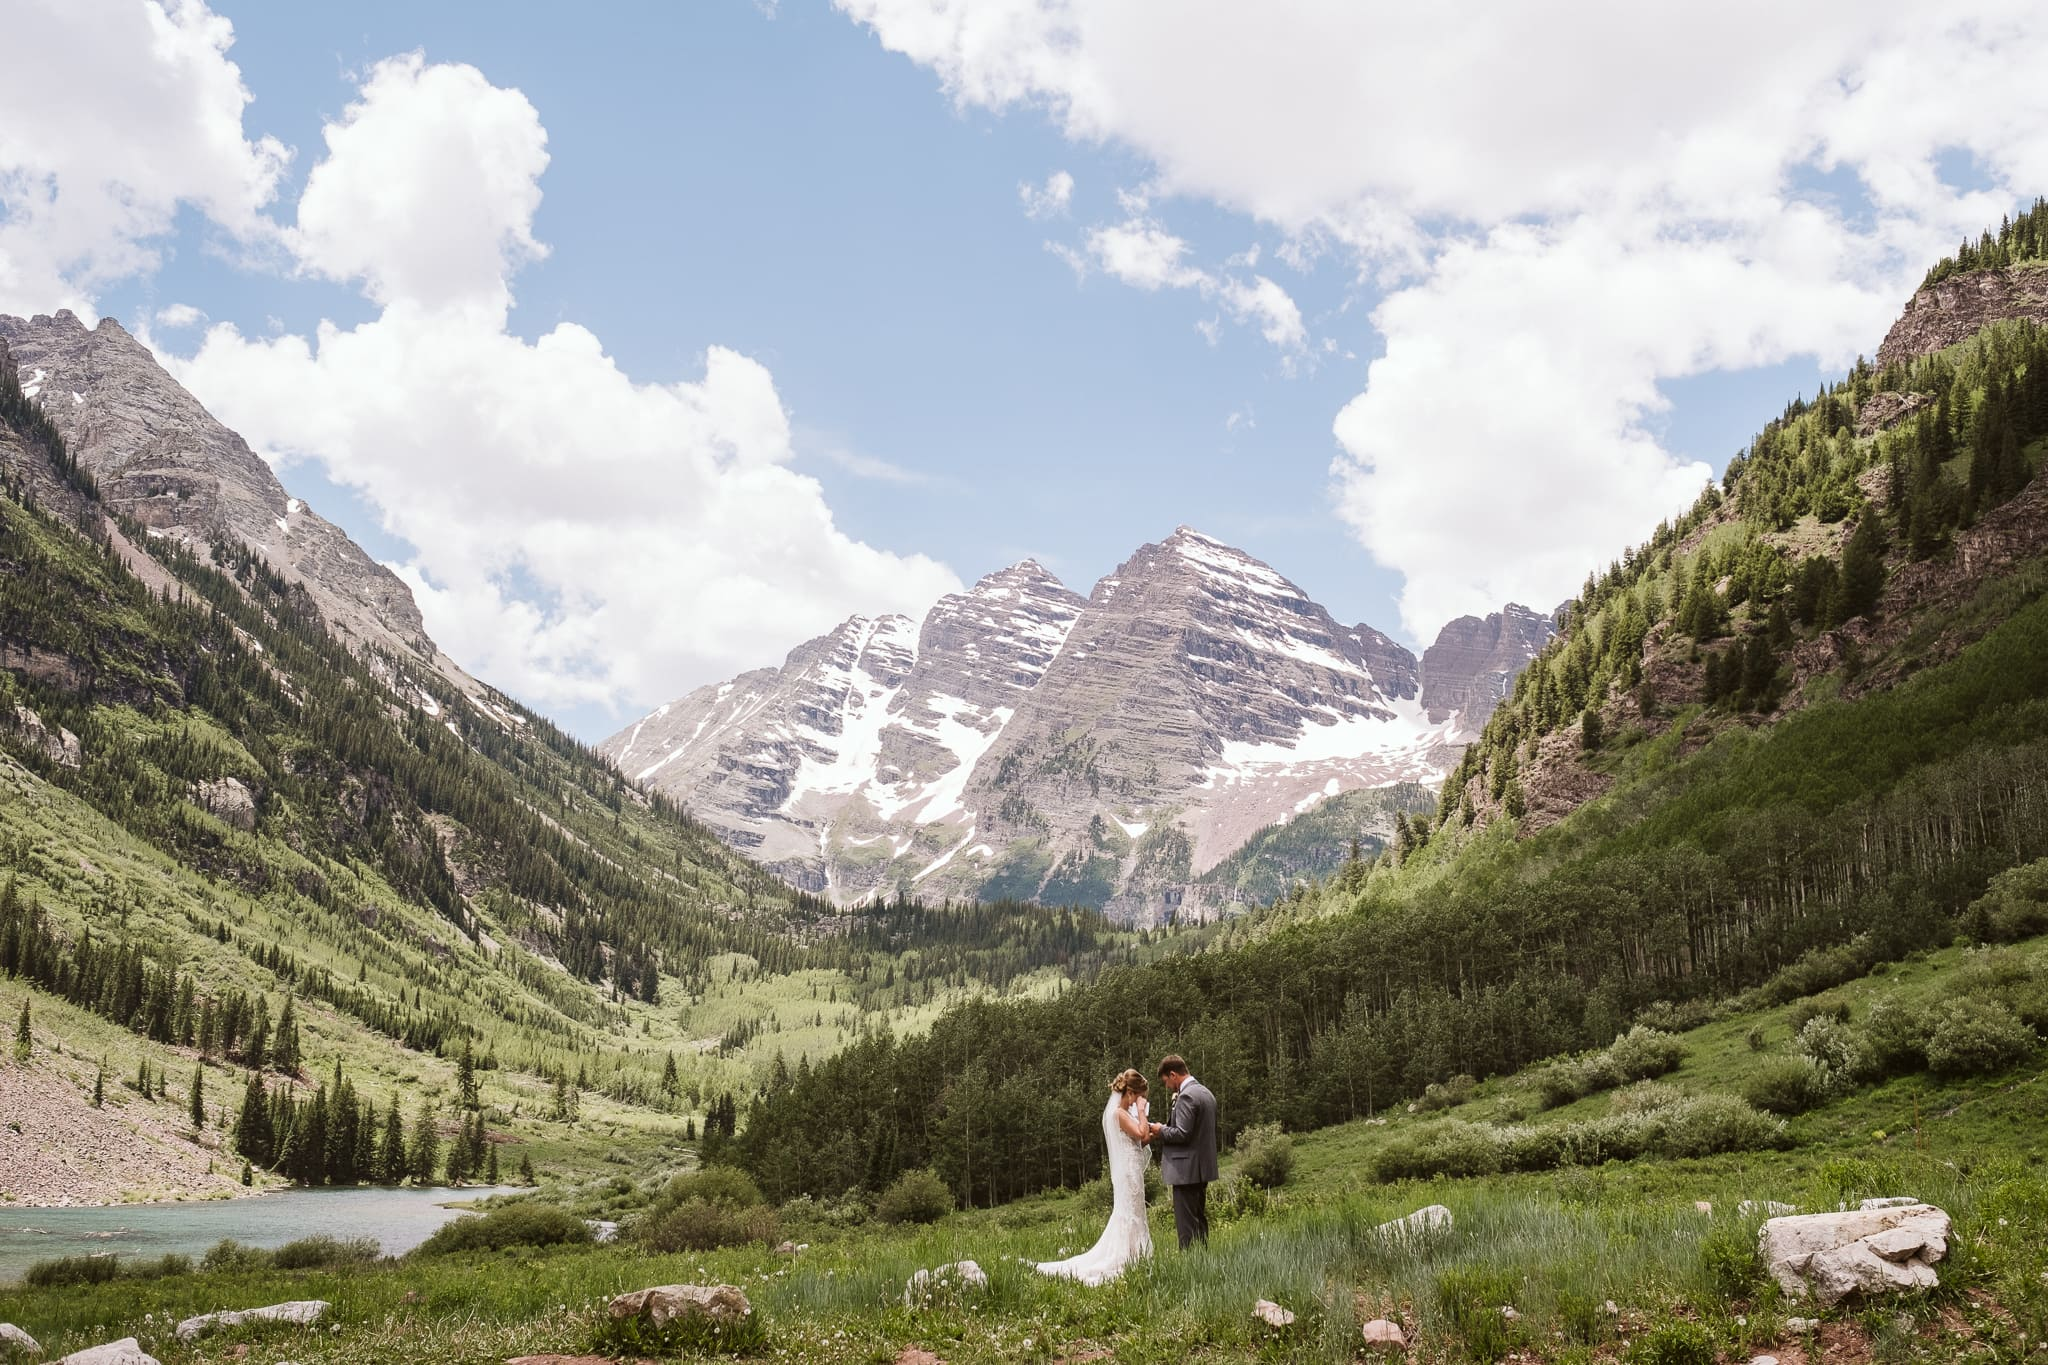 Outdoor wedding venue at Maroon Bells Amphitheater in Aspen, Colorado